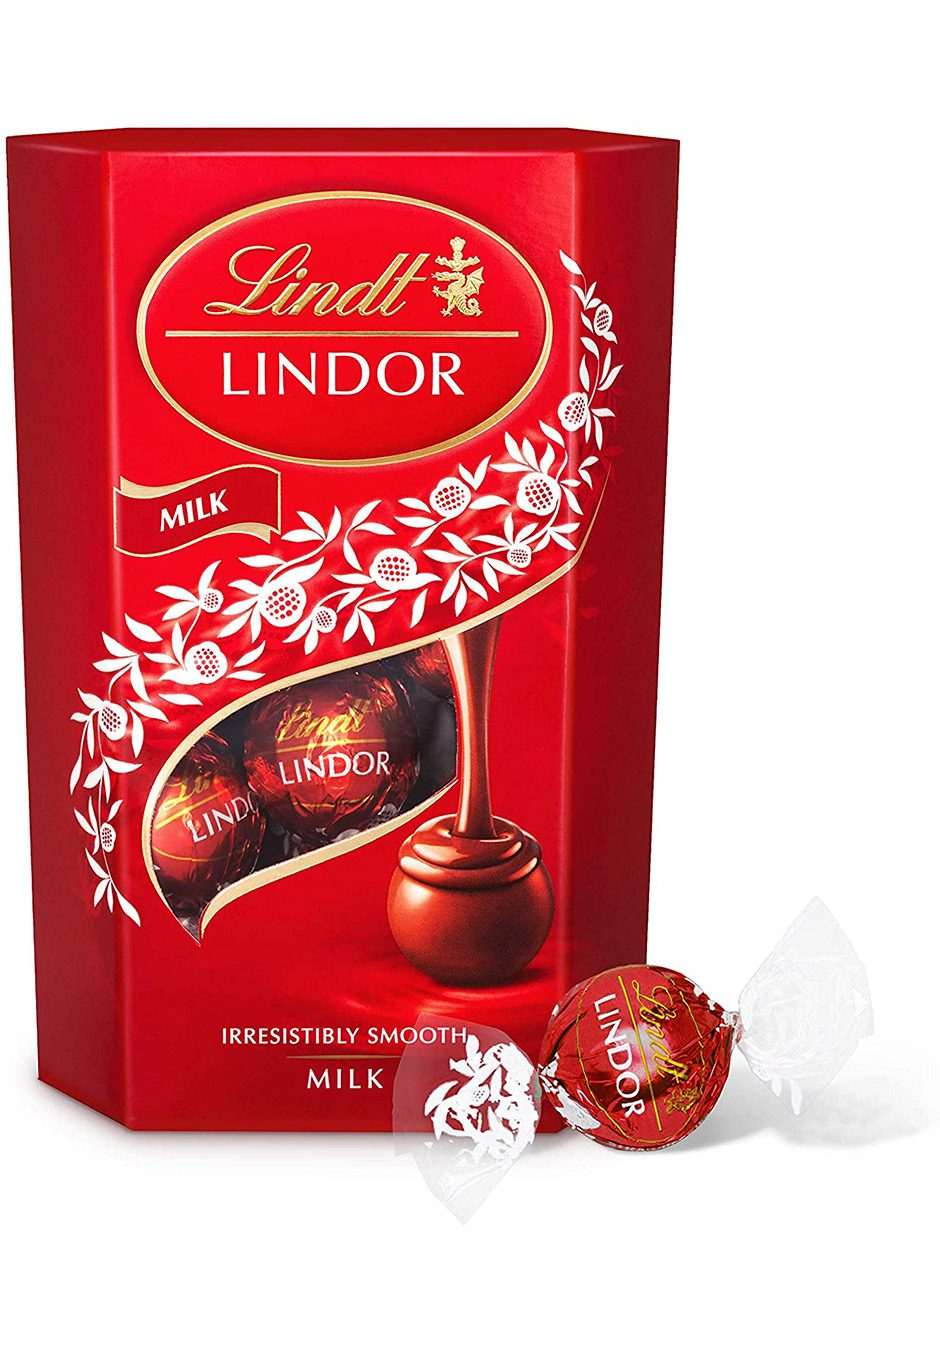 Lindt Lindor | Milk Truffles 200g Gift Box | KeiCo Drinks